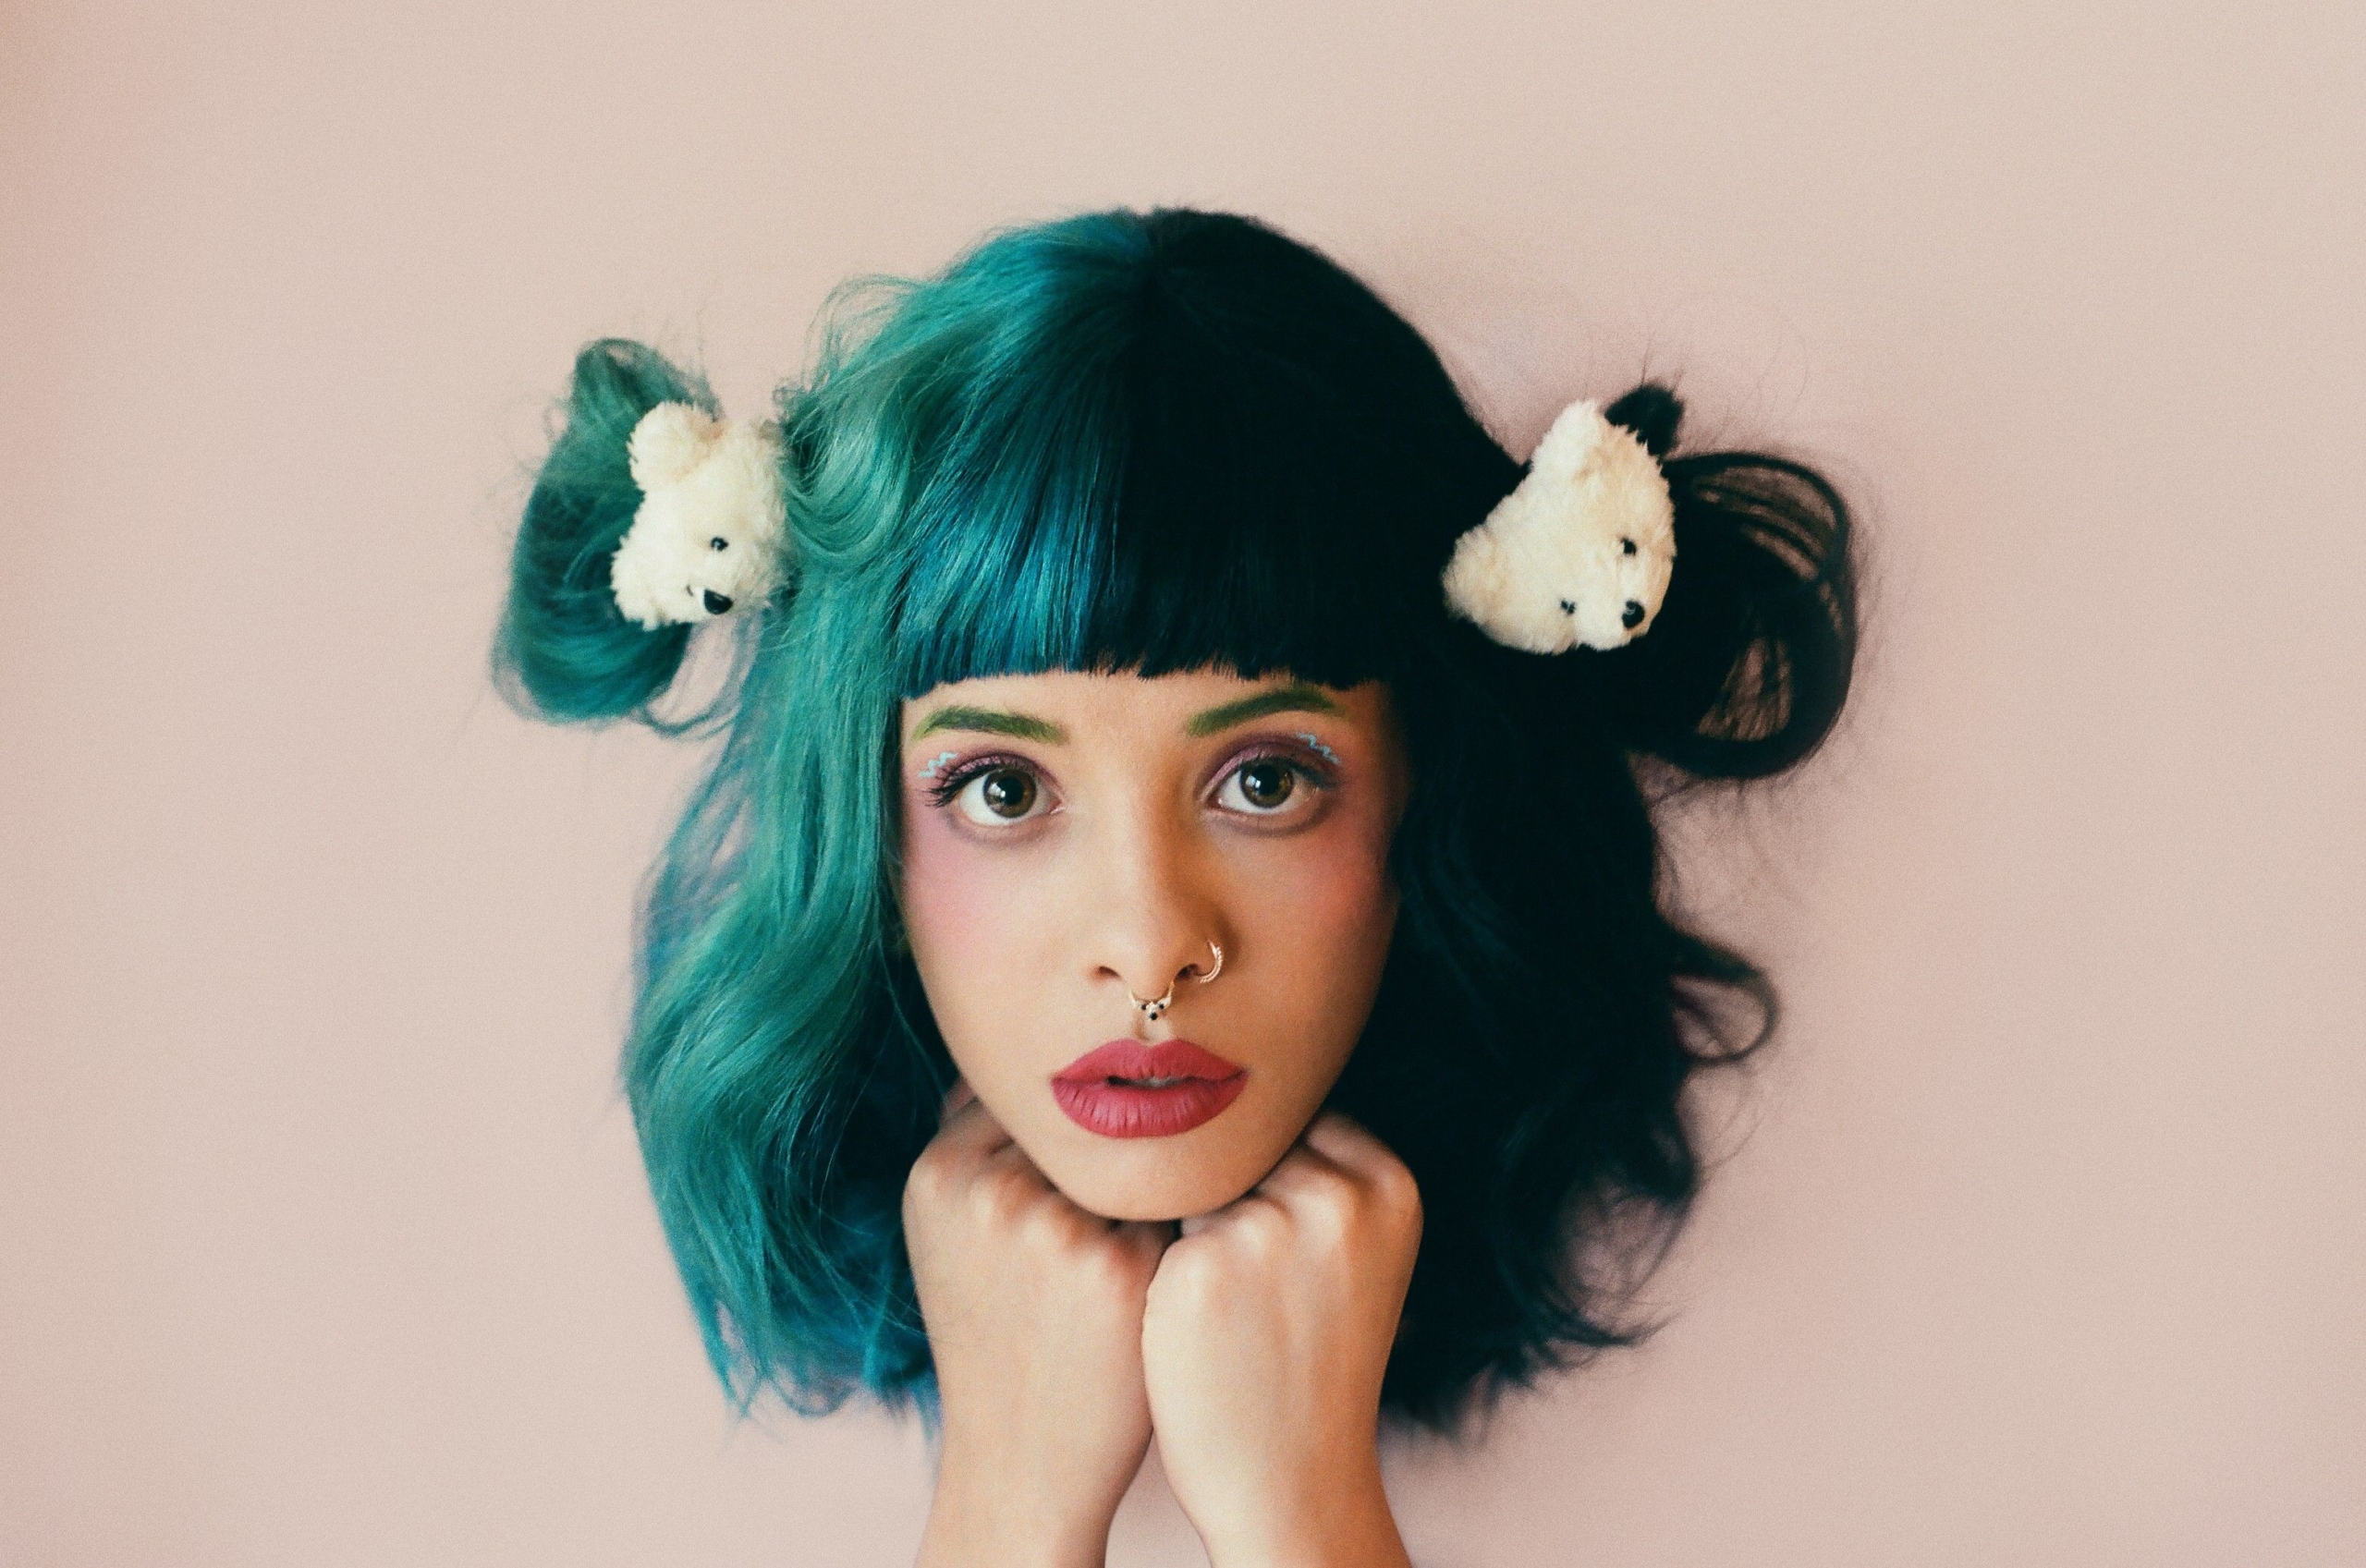 MelanieMartinez Wallpaper Collection Provides Beautiful Results